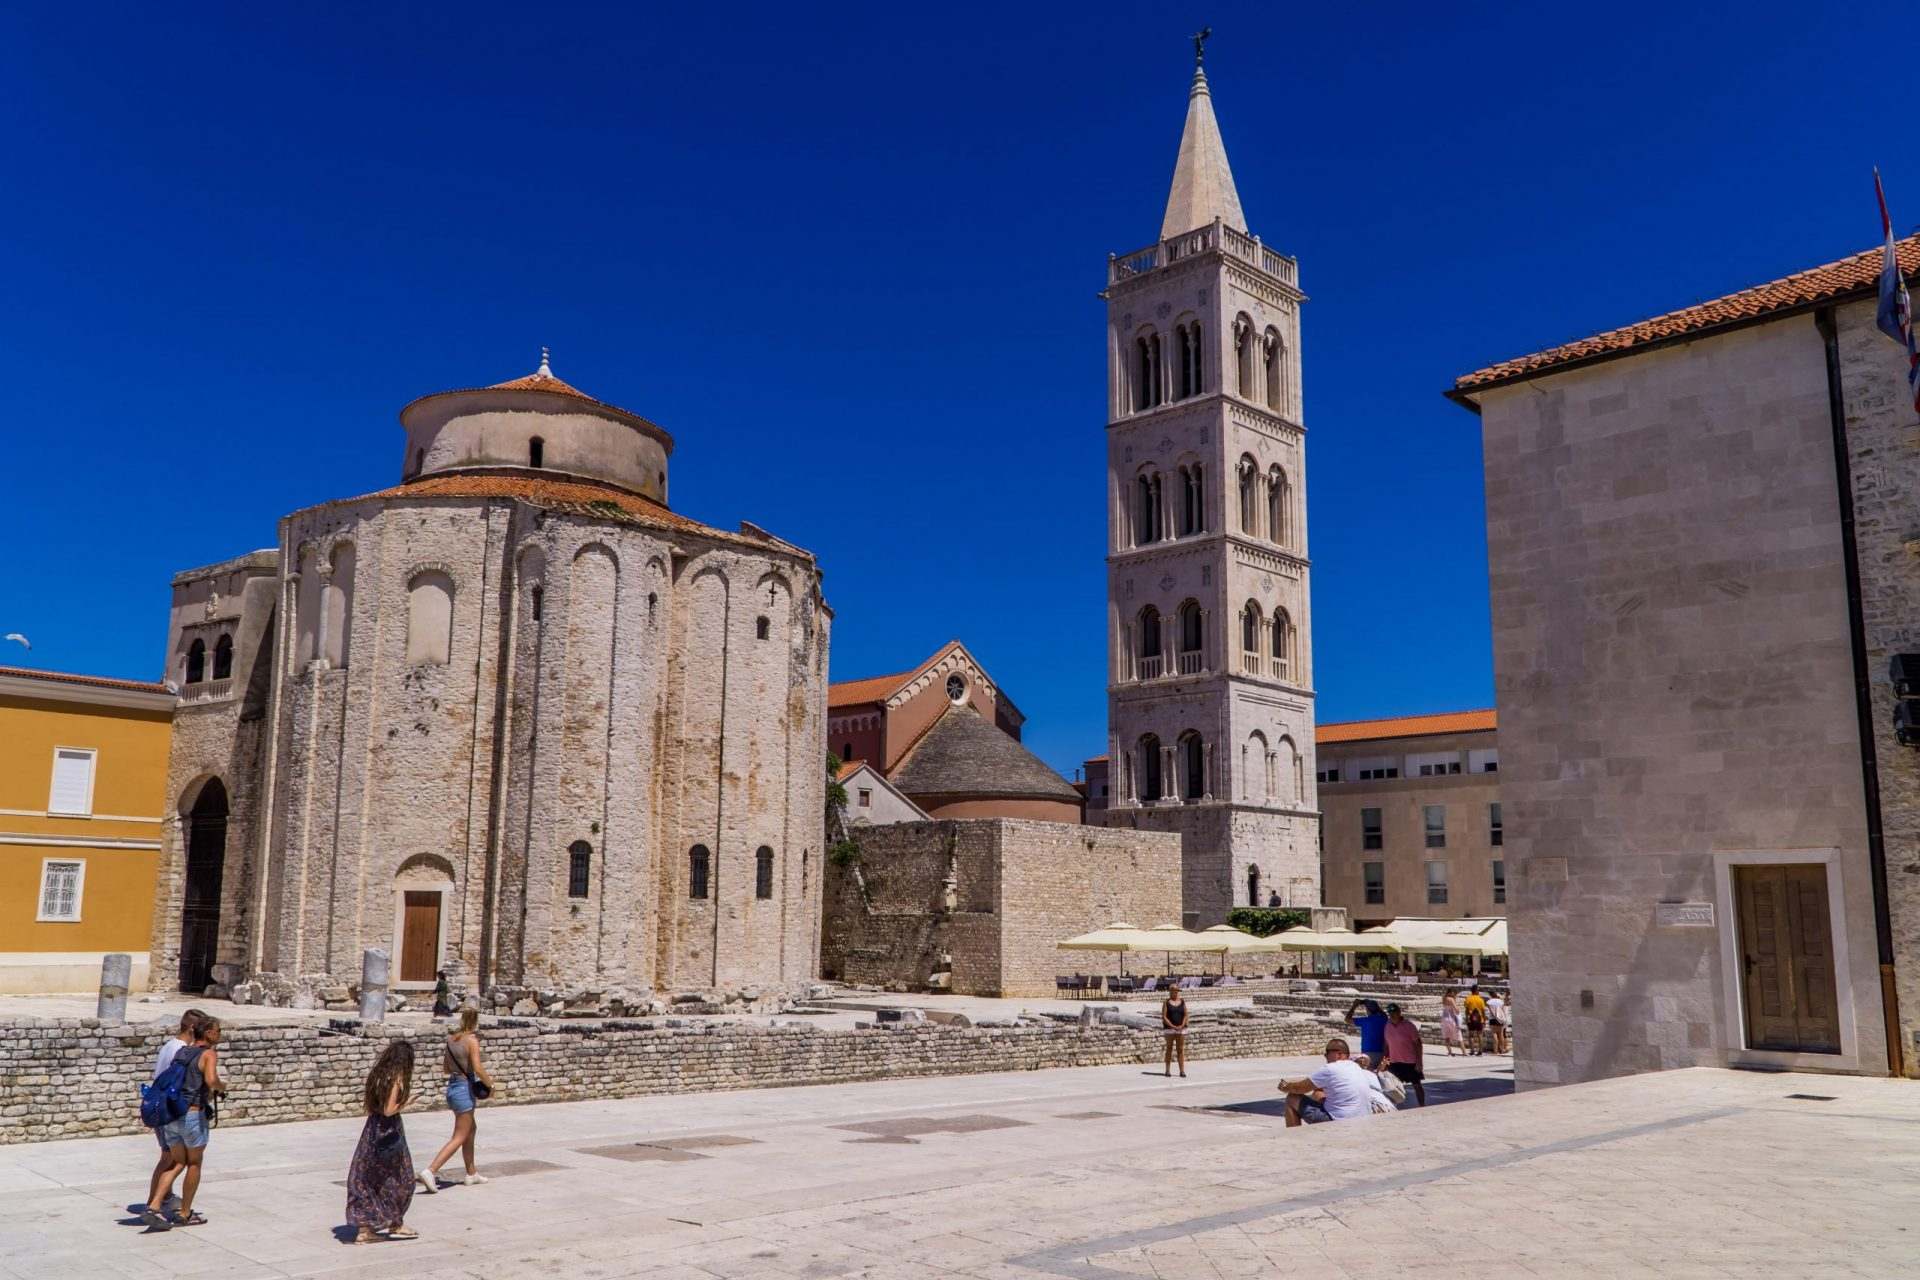 Best places to go in Croatia as a digital nomad - the Old Town of Zadar